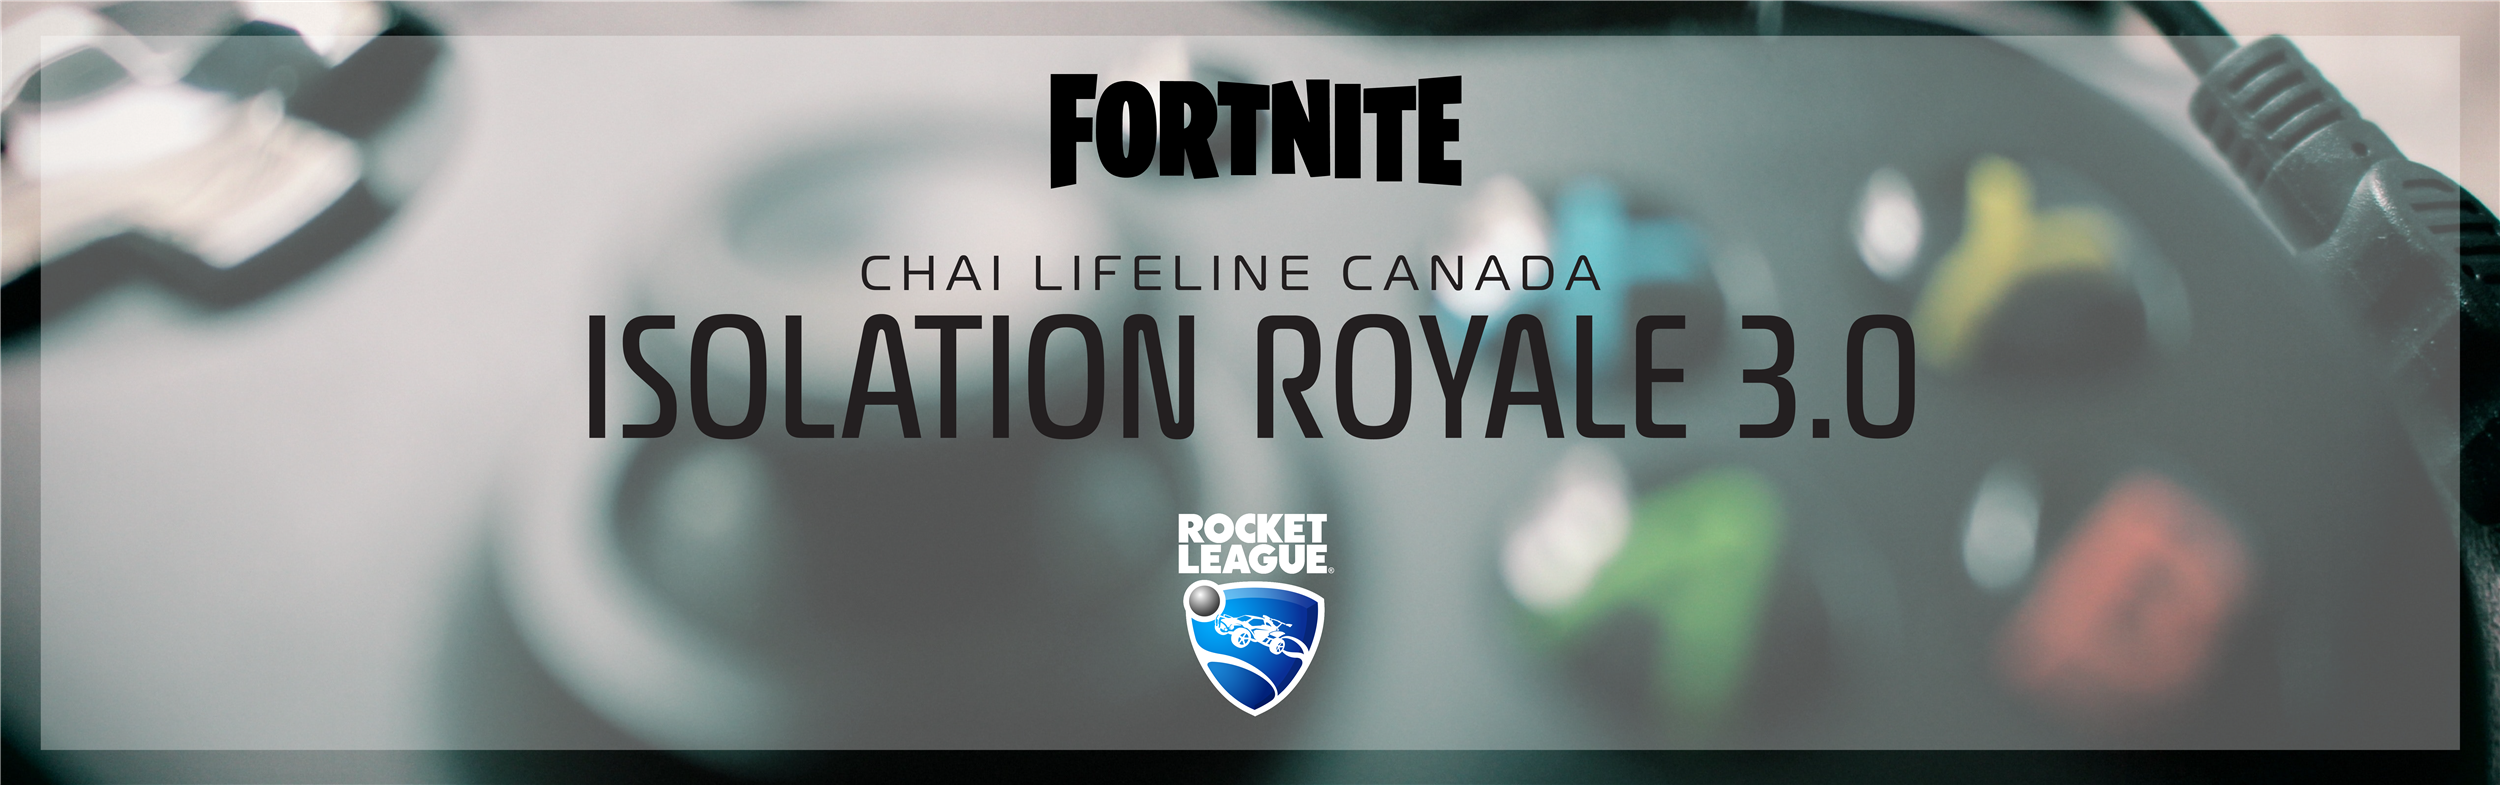 royale_new_banner.png